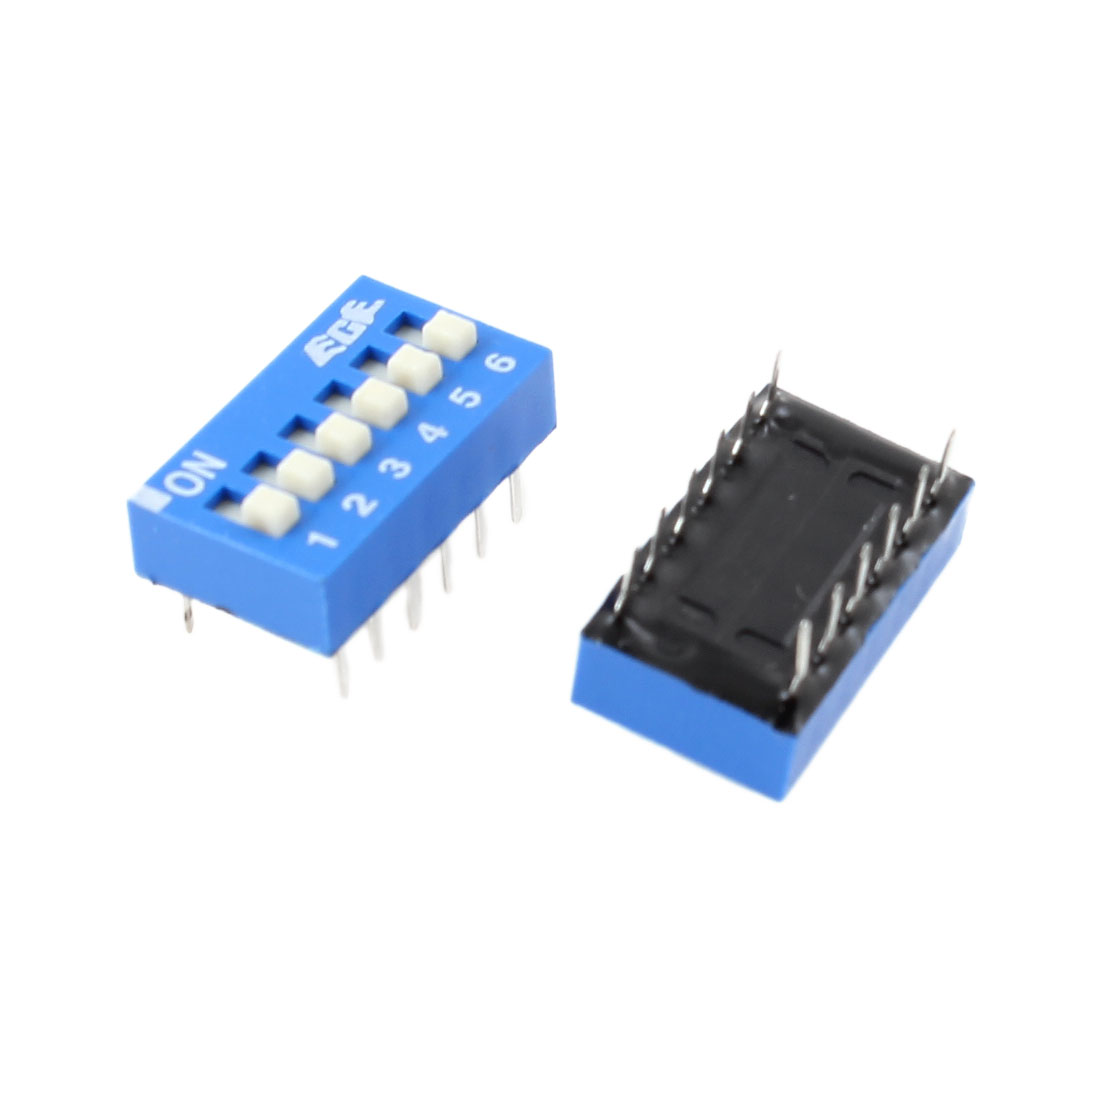 2 Pcs PCB Mount 6 Positions 2.54mm Spacing Slide Type DIP Switch Blue